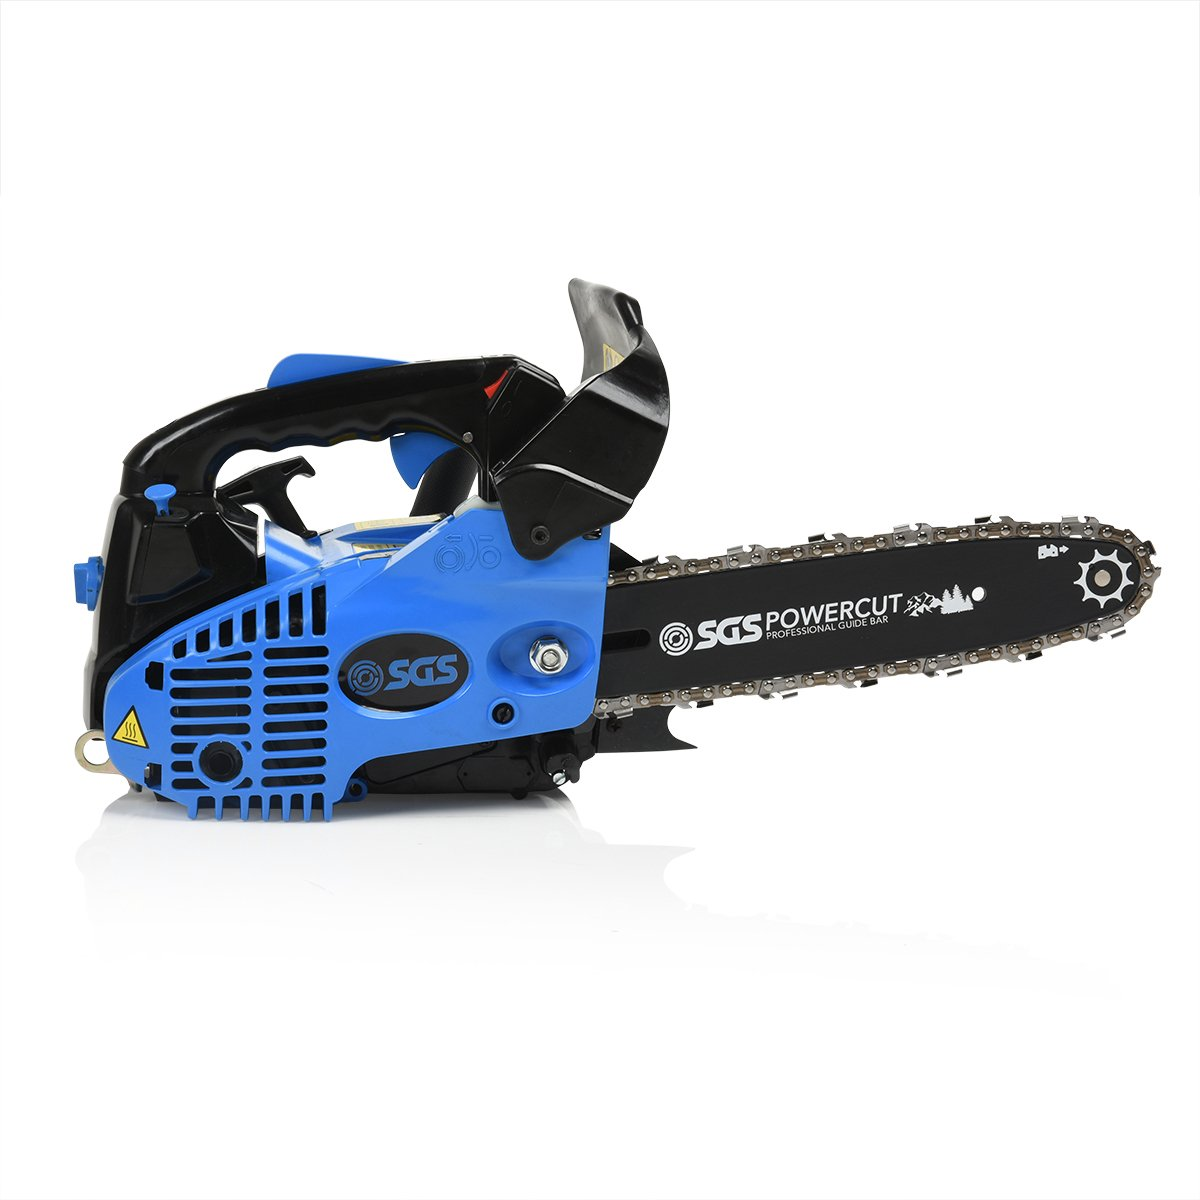 26cc 10 Quot Top Handle Petrol Chainsaw 2x Saw Chains Easy